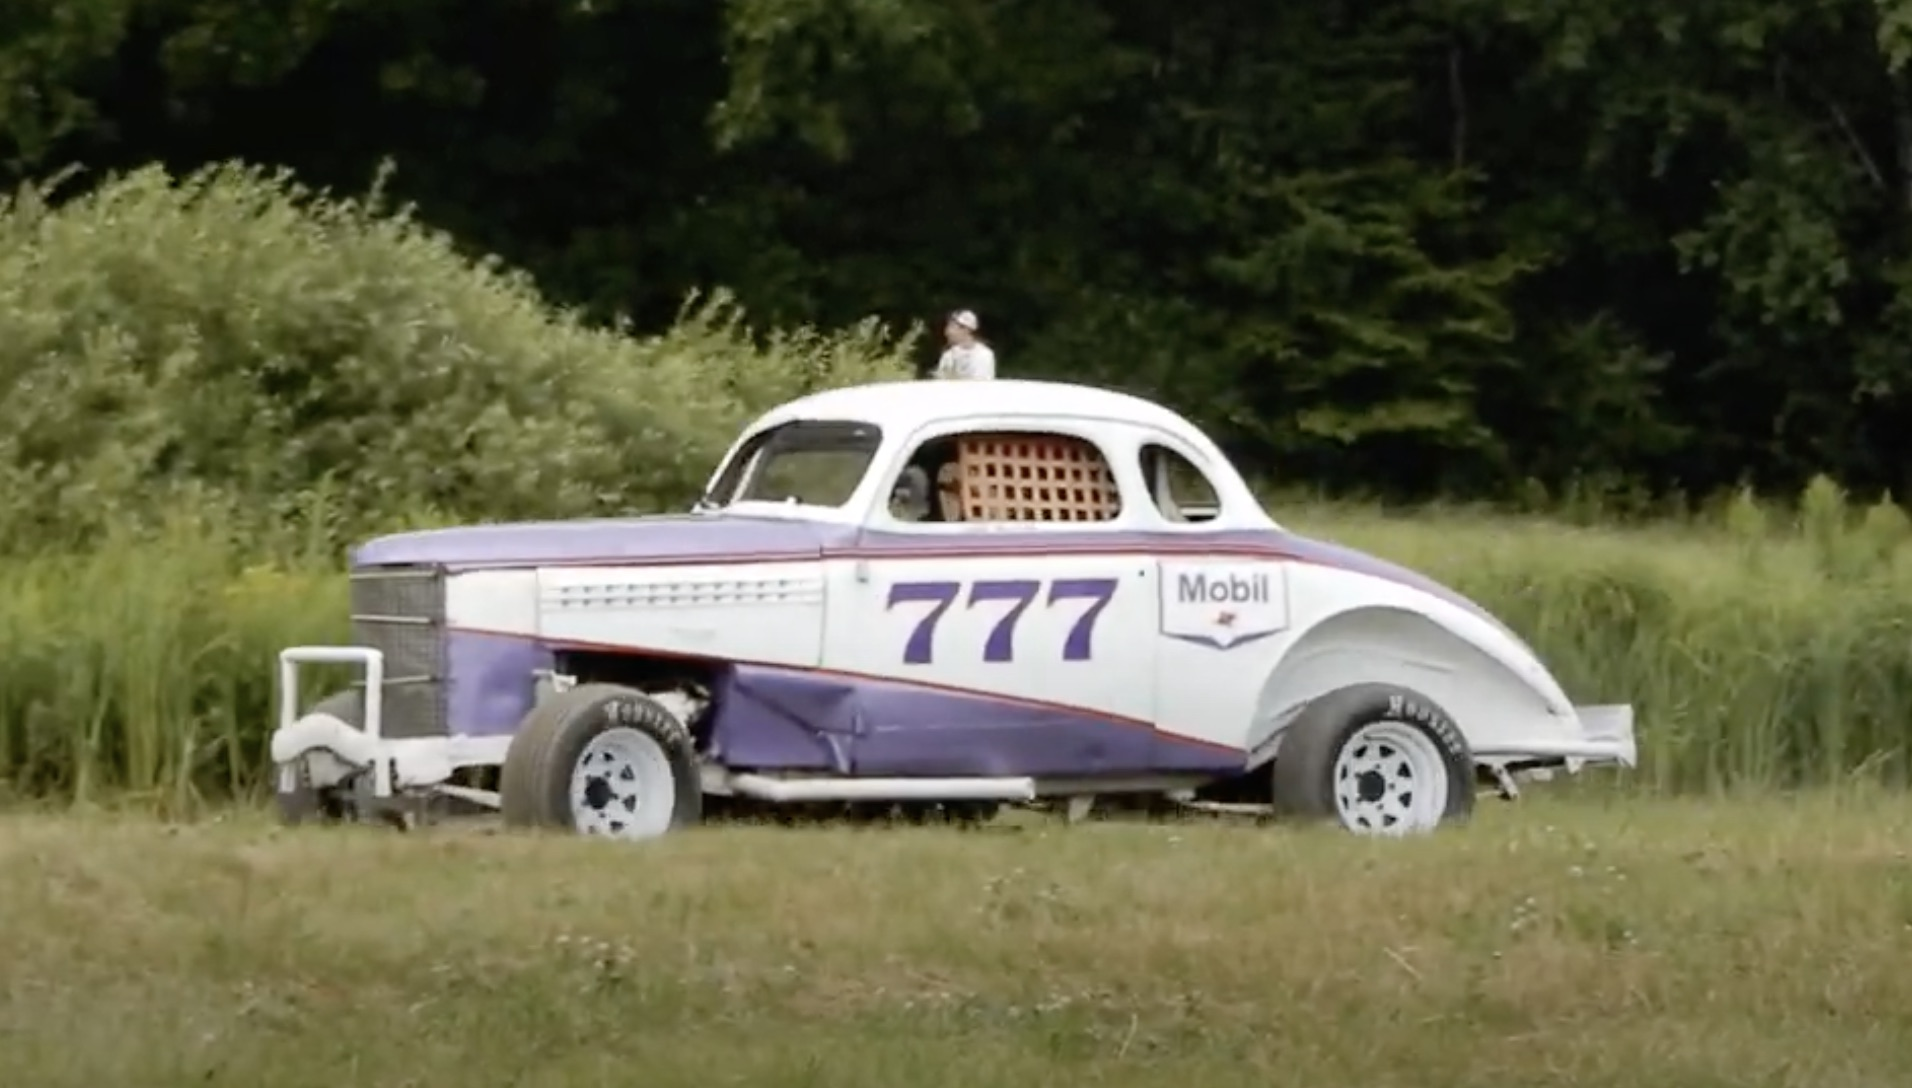 History In Action: Vice Grip Garage Takes The 1938 Chevrolet Racer Out For Laps!